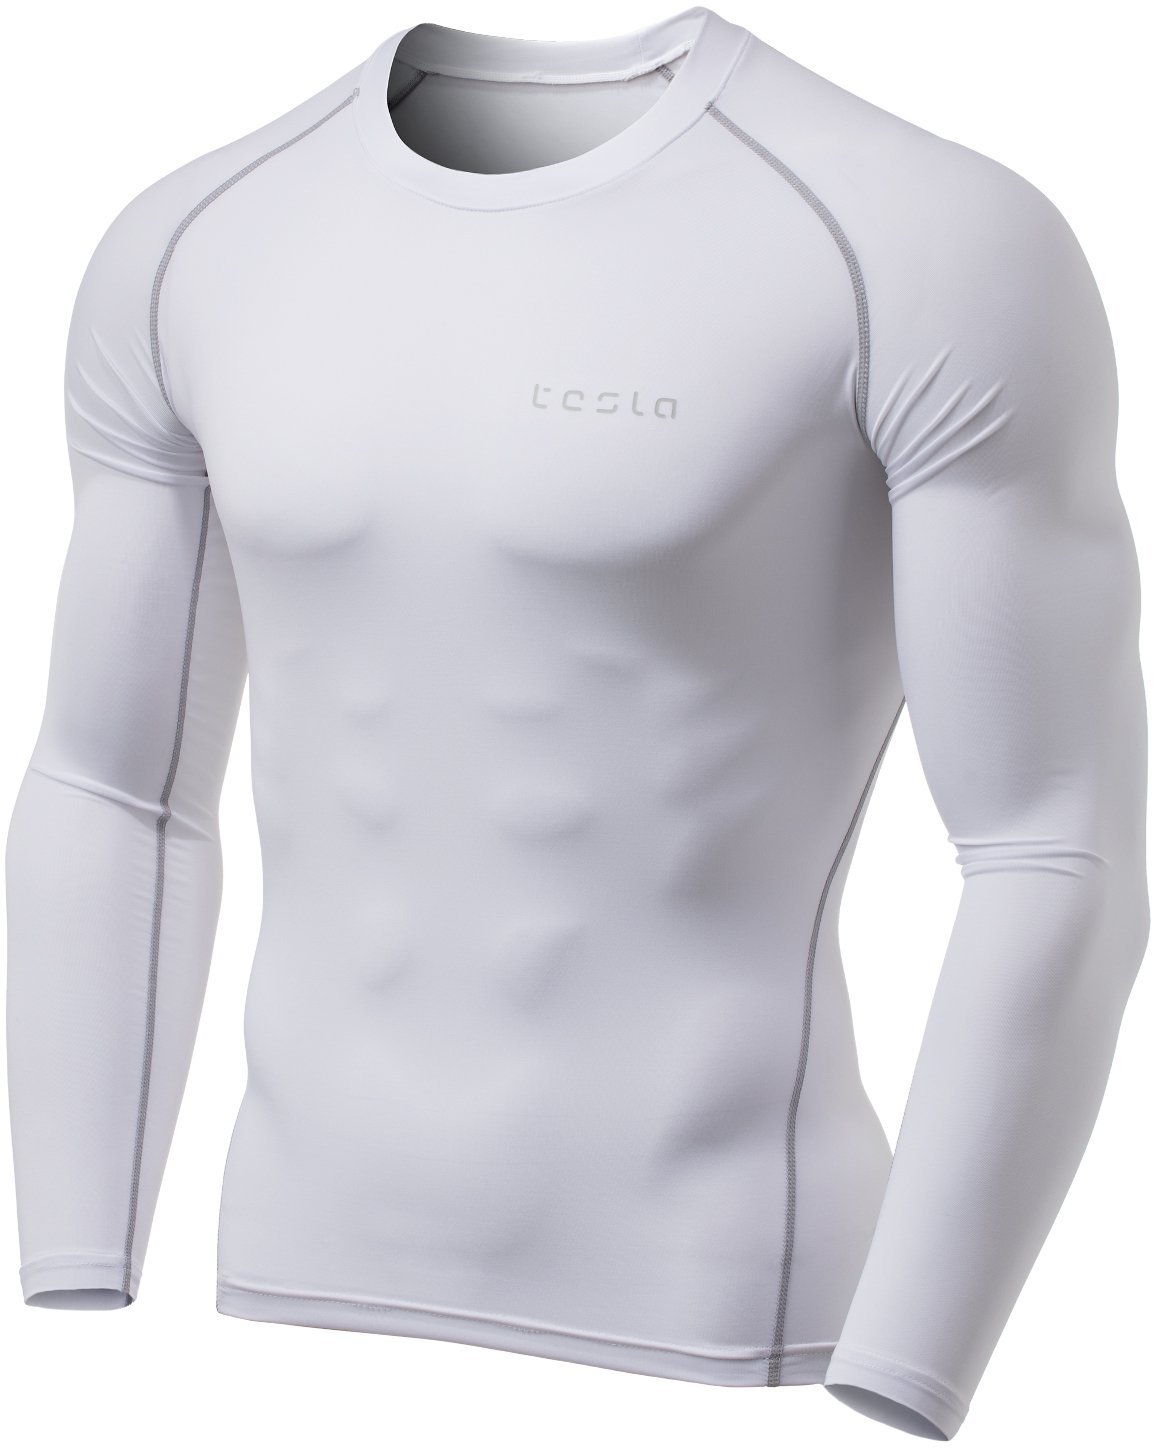 TSLA Men's Thermal Wintergear Compression Baselayer Long Sleeve Top, Thermal Athletic(yud34) - White, Small by TSLA